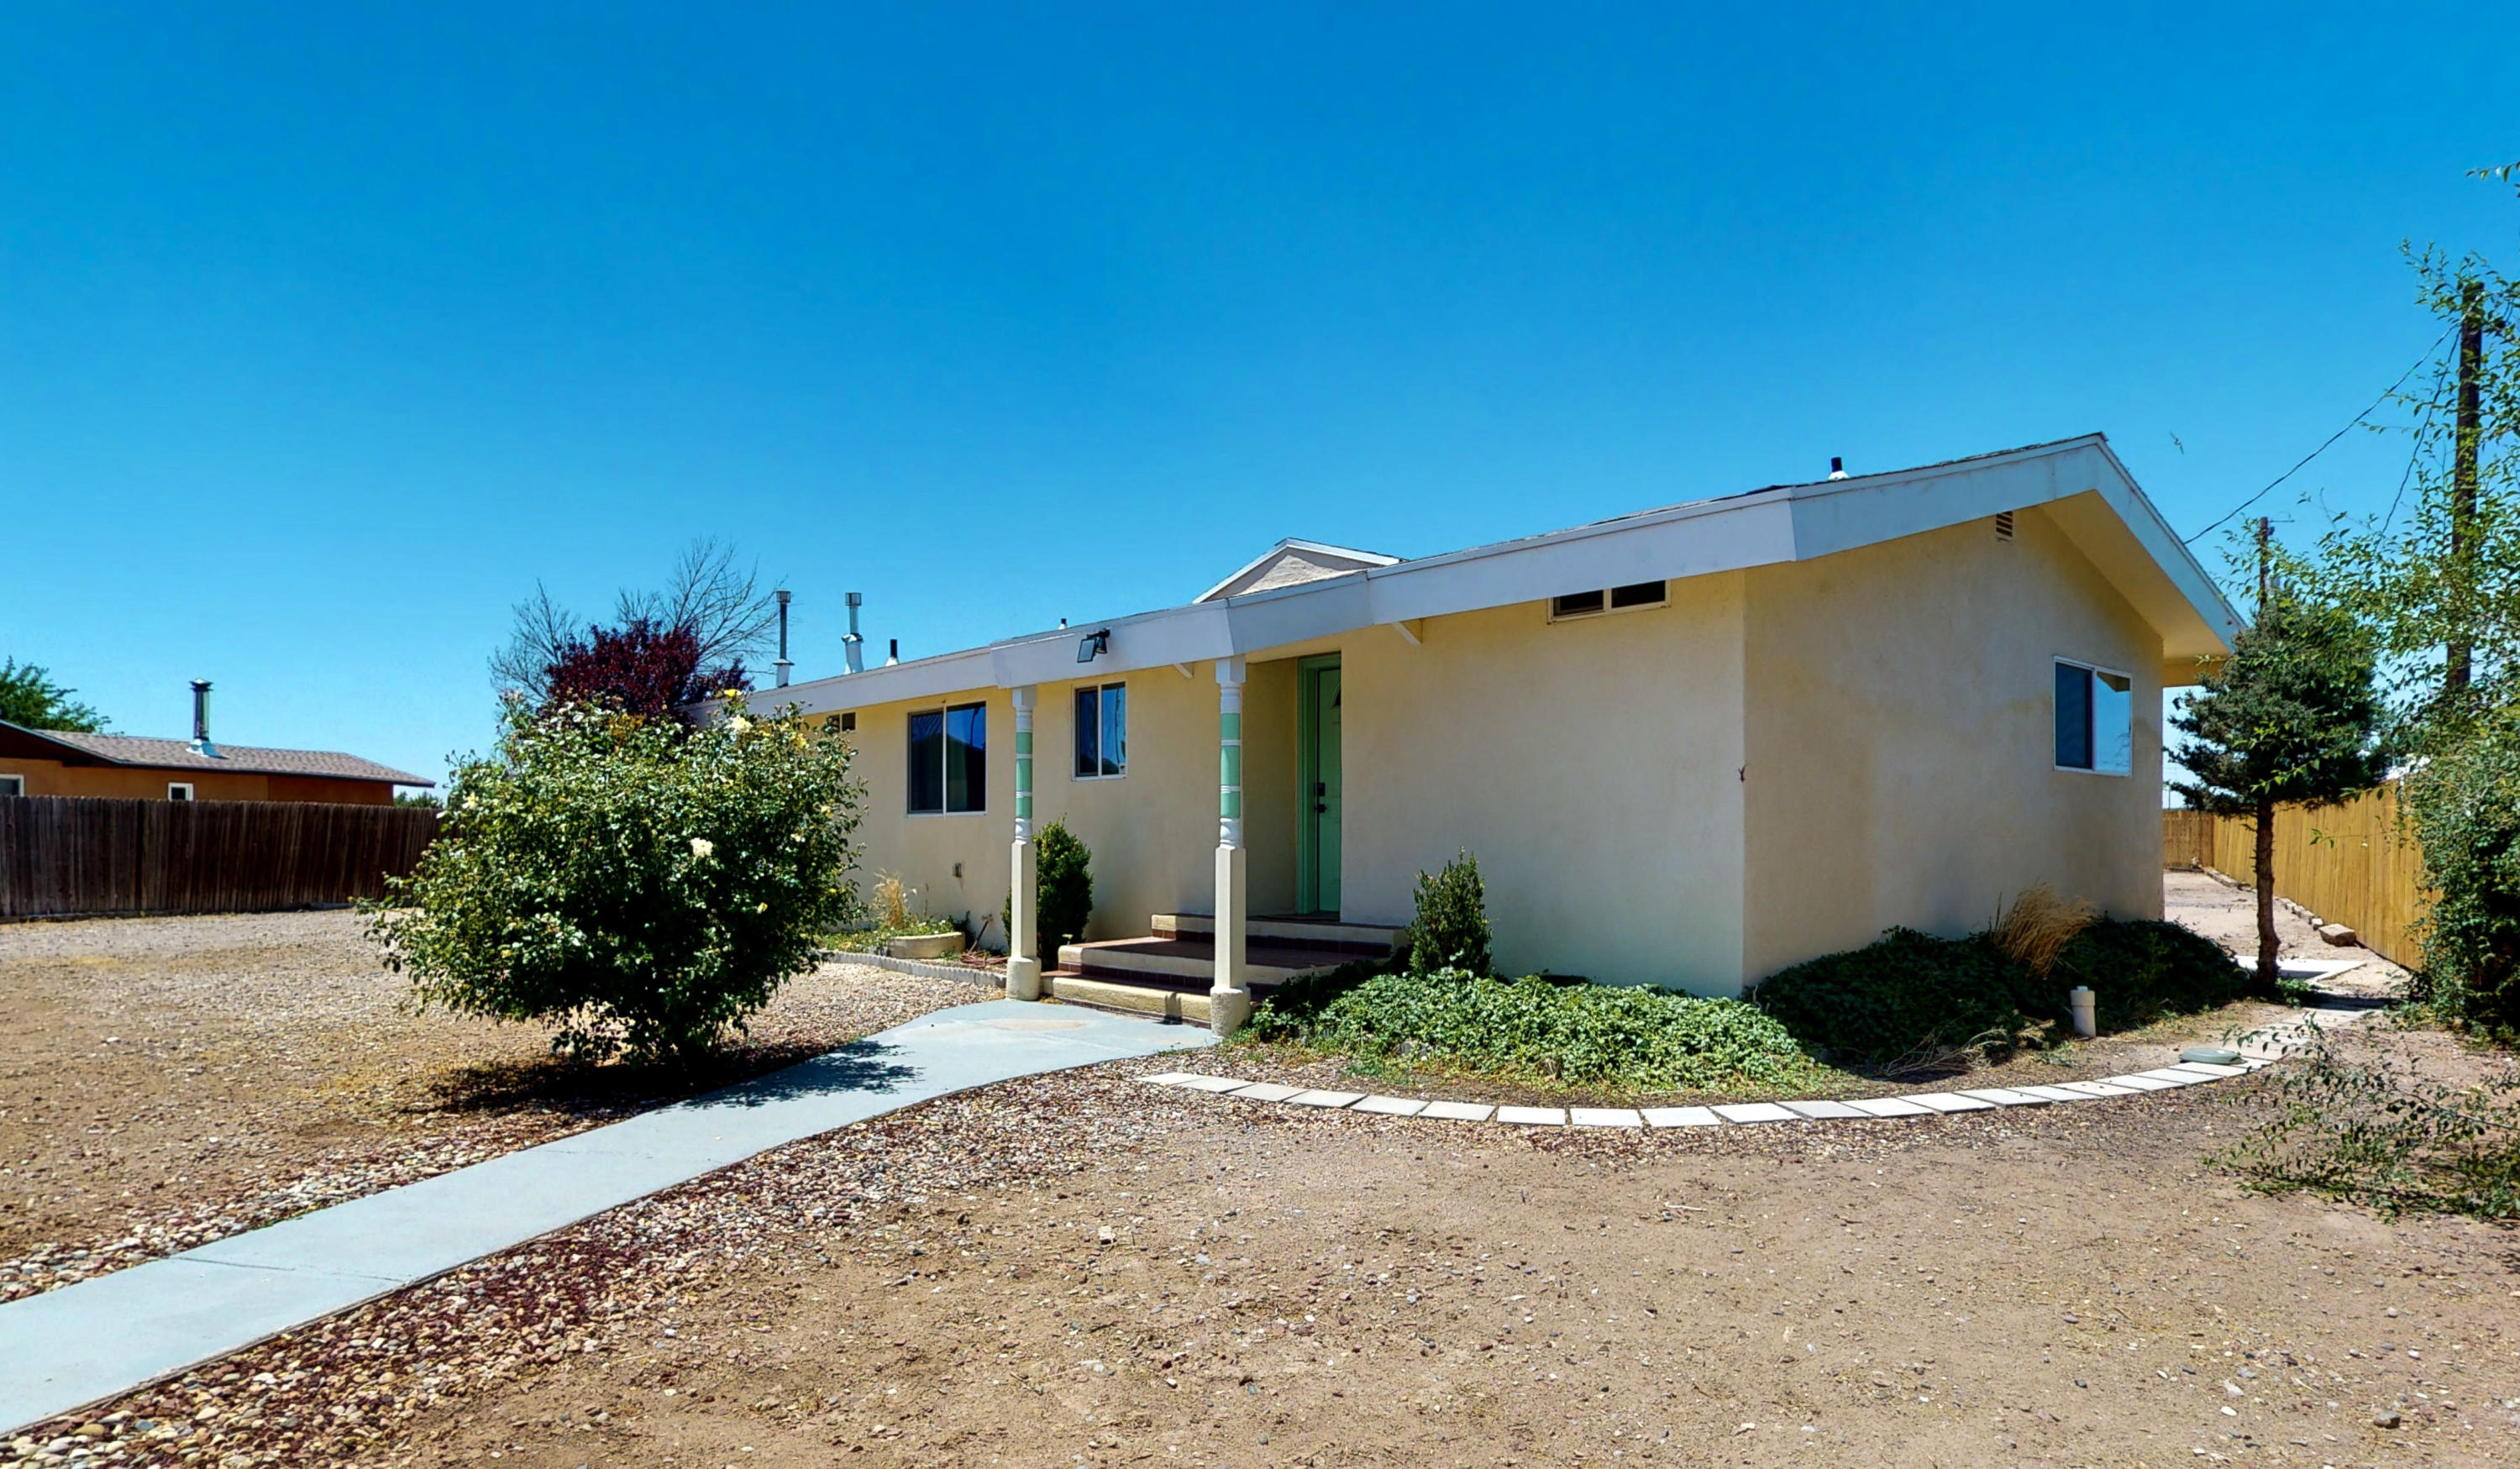 Hurry! You do not want to miss this newly remodeled North Valley home!  Situated on a huge lot in a charming neighborhood with Mountain views! This home is a must-see with so much attention to detail in every room! French doors of the living room lead you to a huge backyard ready for your creativity and ideas! The private master suite features a new master bathroom with double sinks and a walk-in closet! This home is gated with backyard access for privacy and added security!  Close to Dining, Balloon Fiesta Park, and quick access to Alameda Blvd. Schedule a private showing or take a virtual walkthrough tour today!